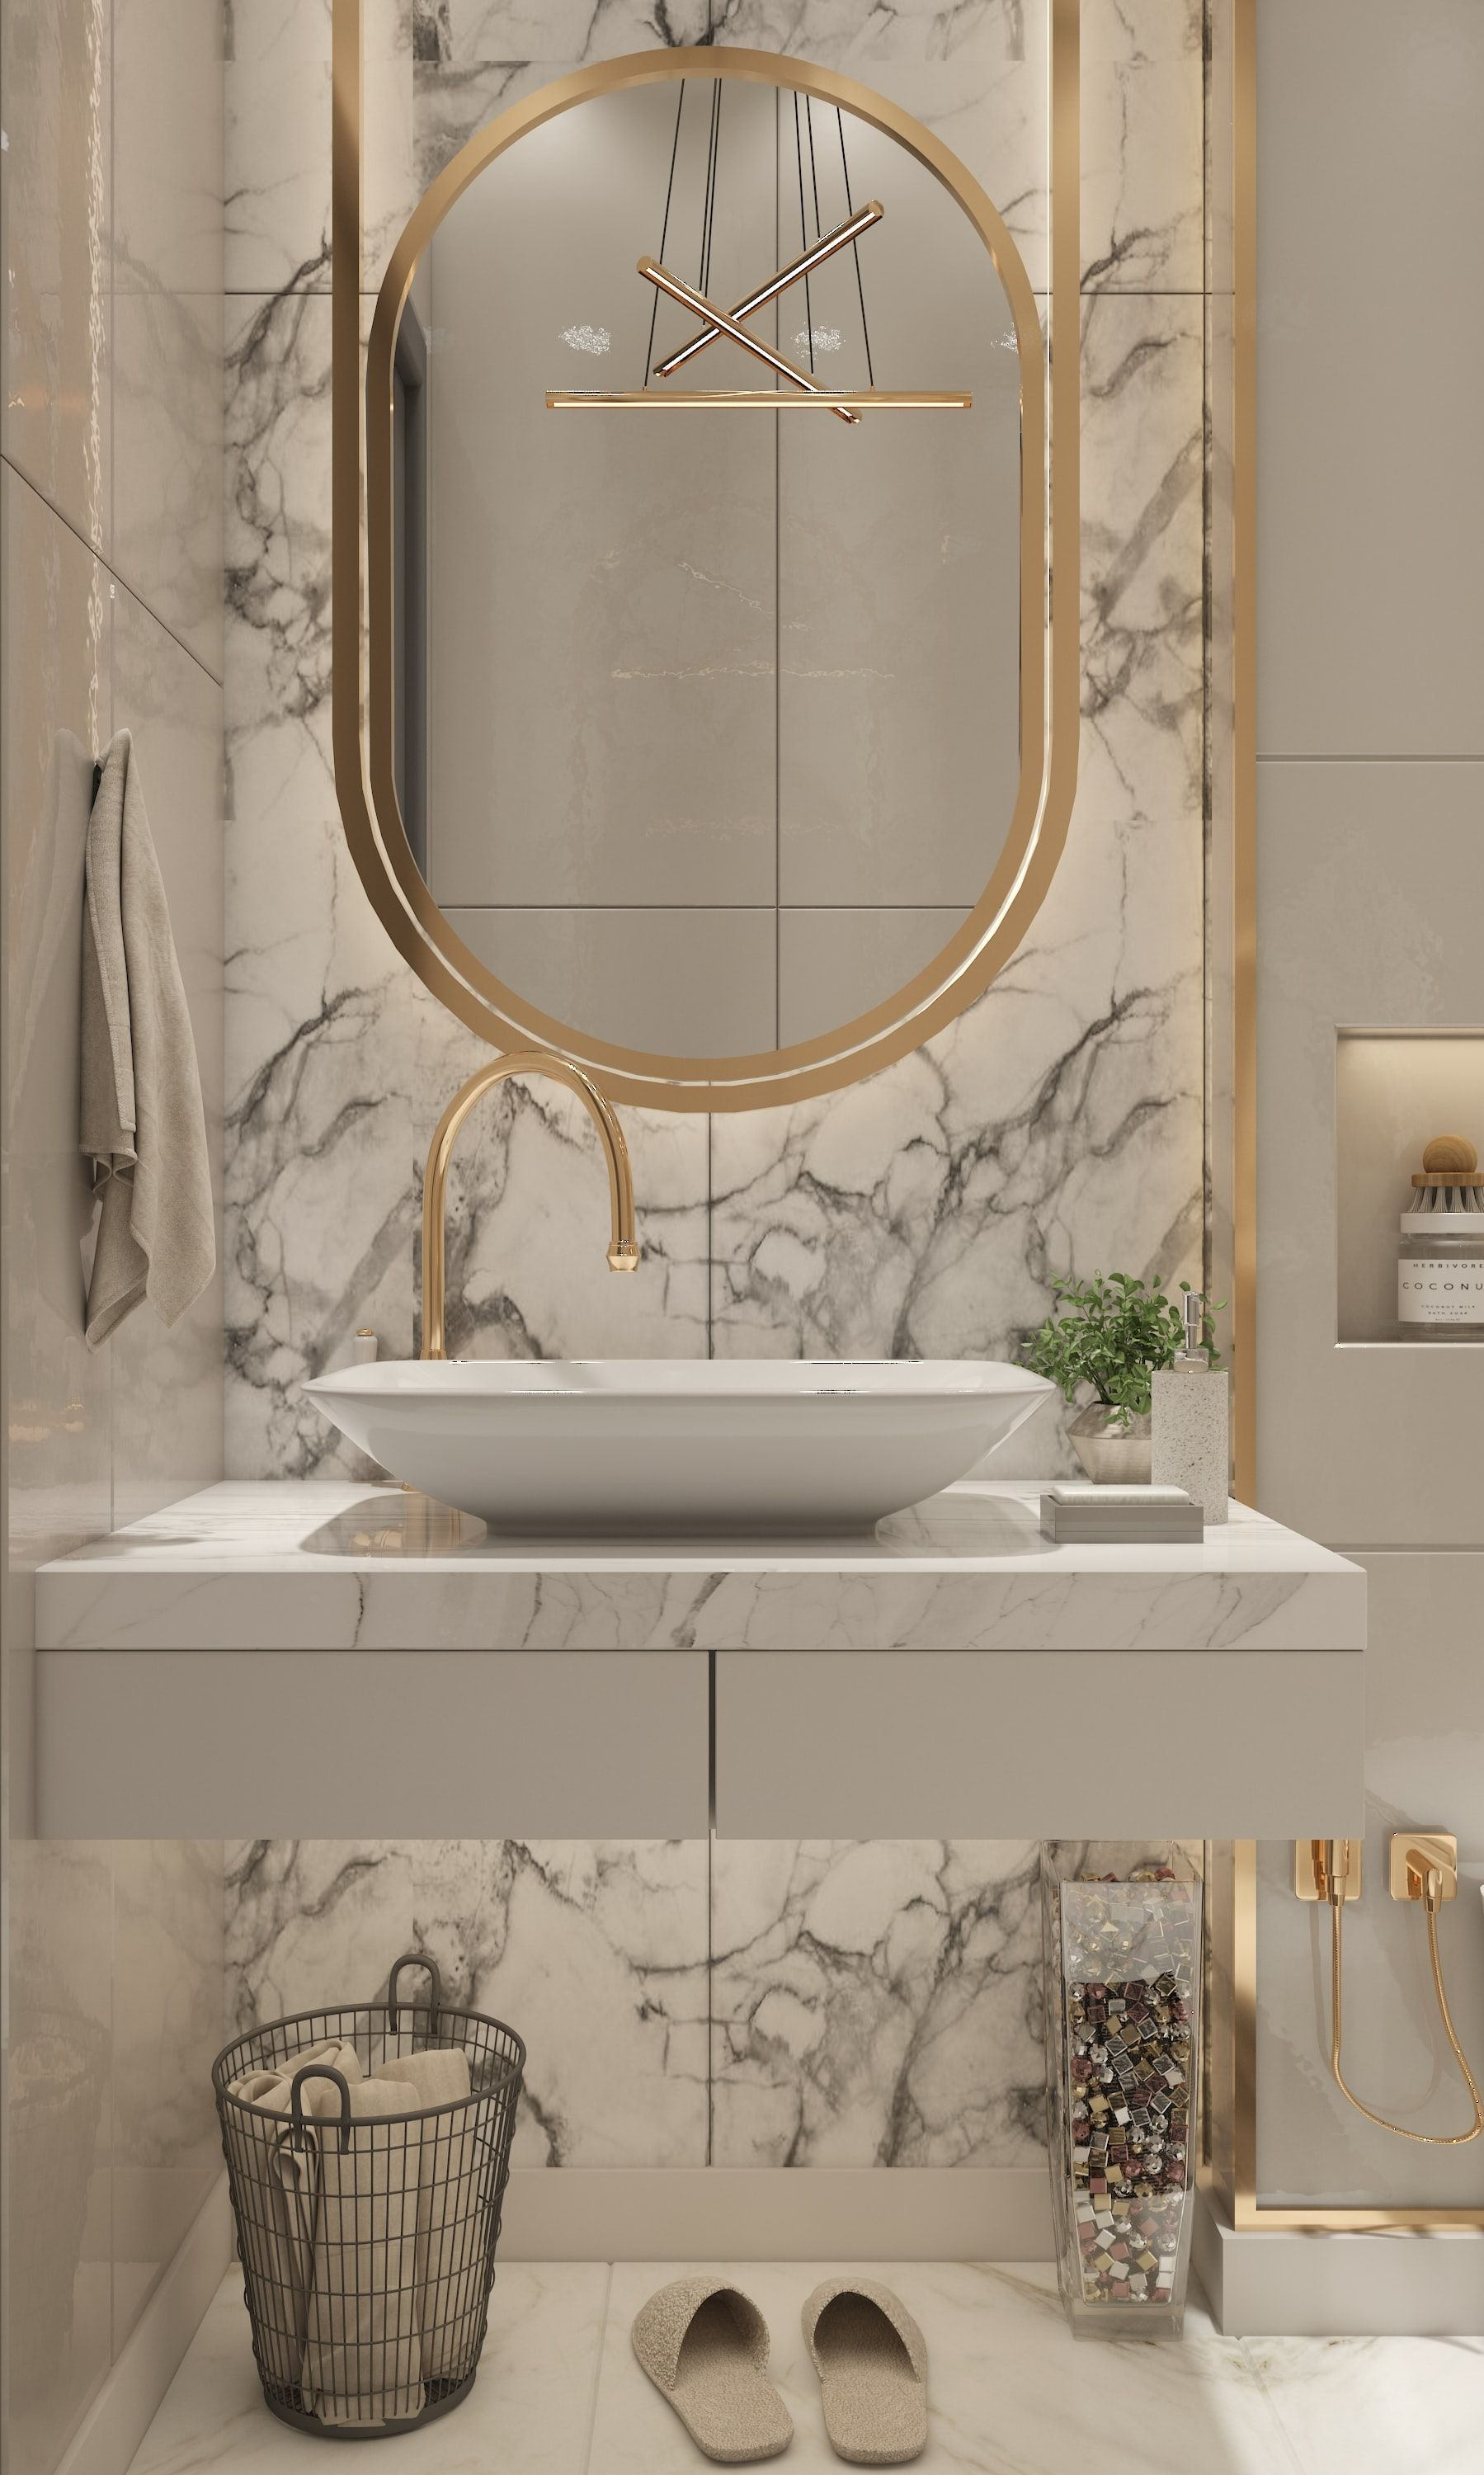 8 Clever Tricks On How To Make A Small Bathroom Look Bigger In 2020 Bathroom Design Bathroom Design Small Bathroom Remodel Designs